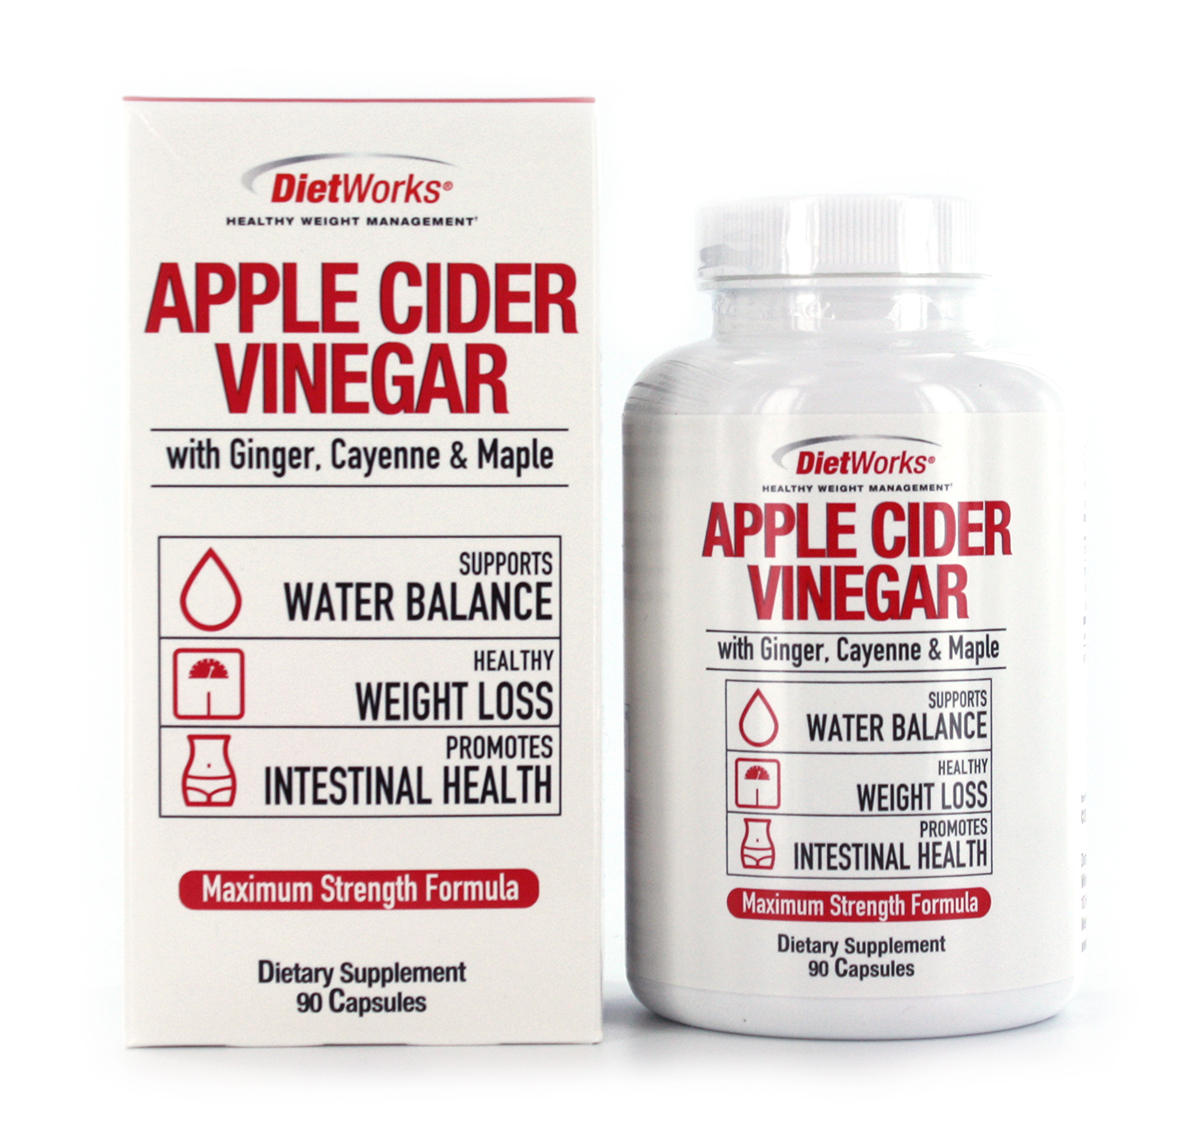 Is Apple Cider Vinegar Available In Capsule Form